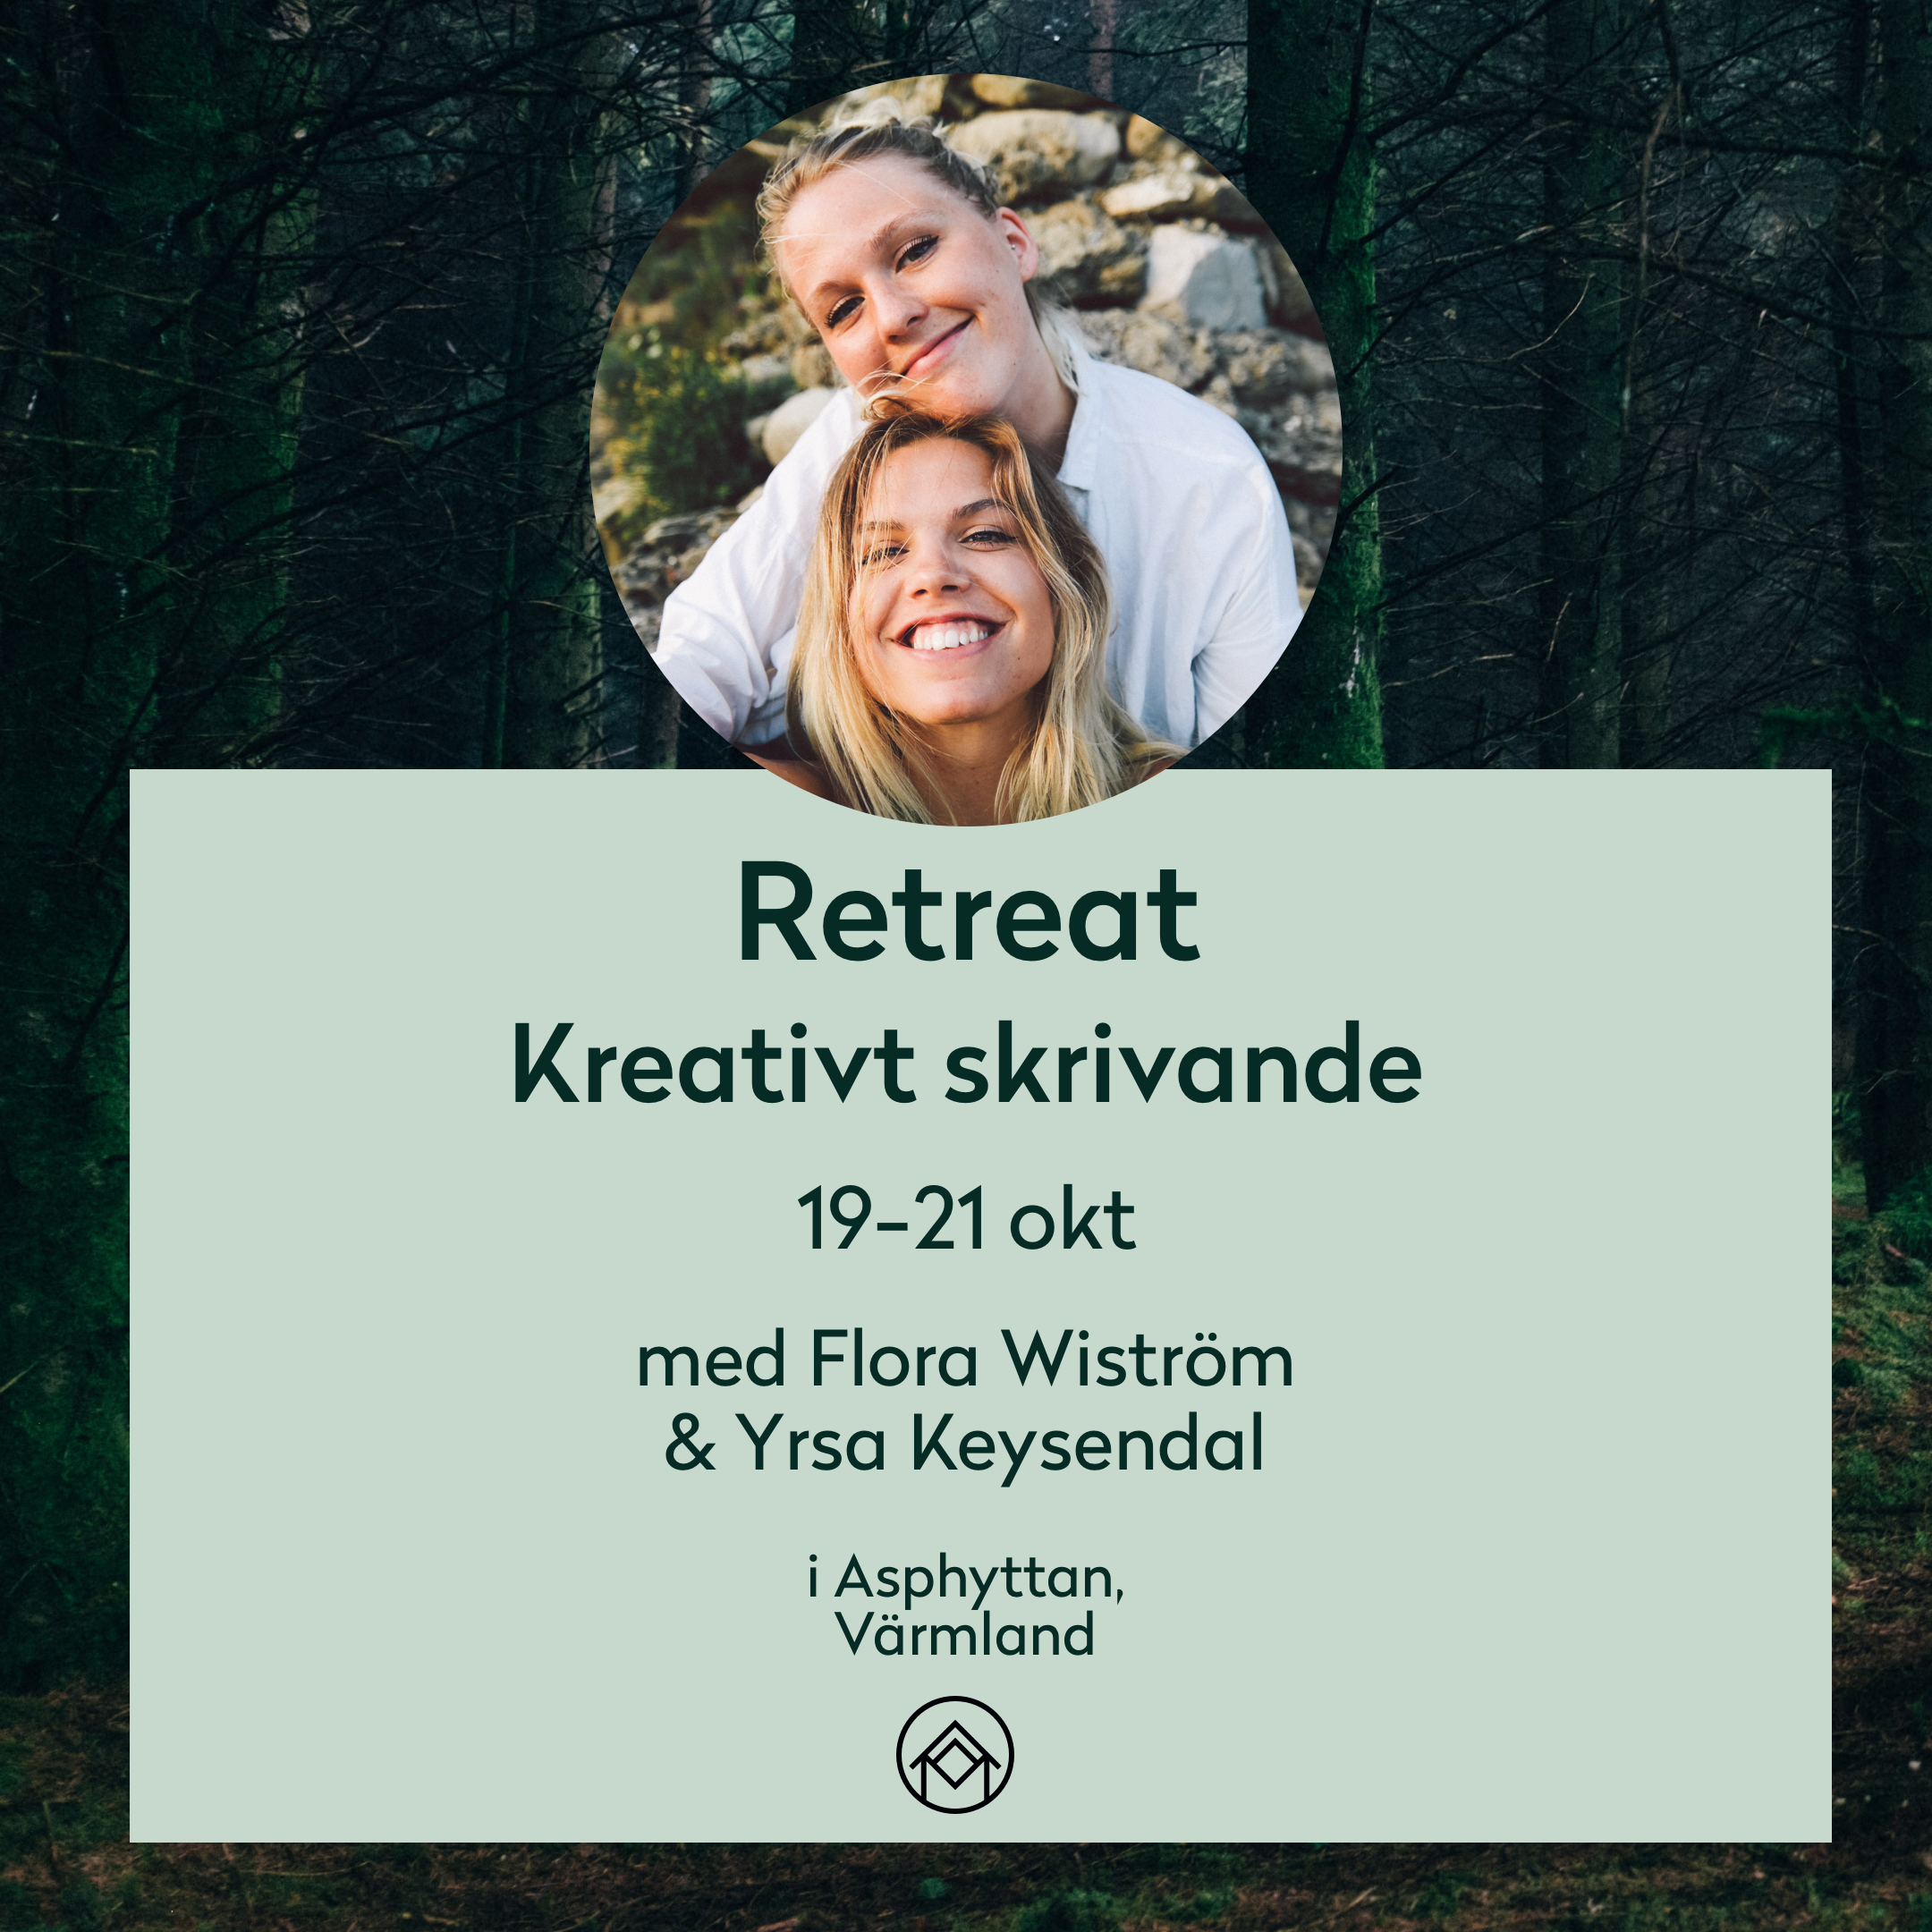 Creative writing - Who wouldn't love a weekend dedicated to creative writing? From the 19 - 21 October we are co-hosting a retreat with the author and blogger, Flora Wiström, together with the poet and author, Yrsa Keysendal.